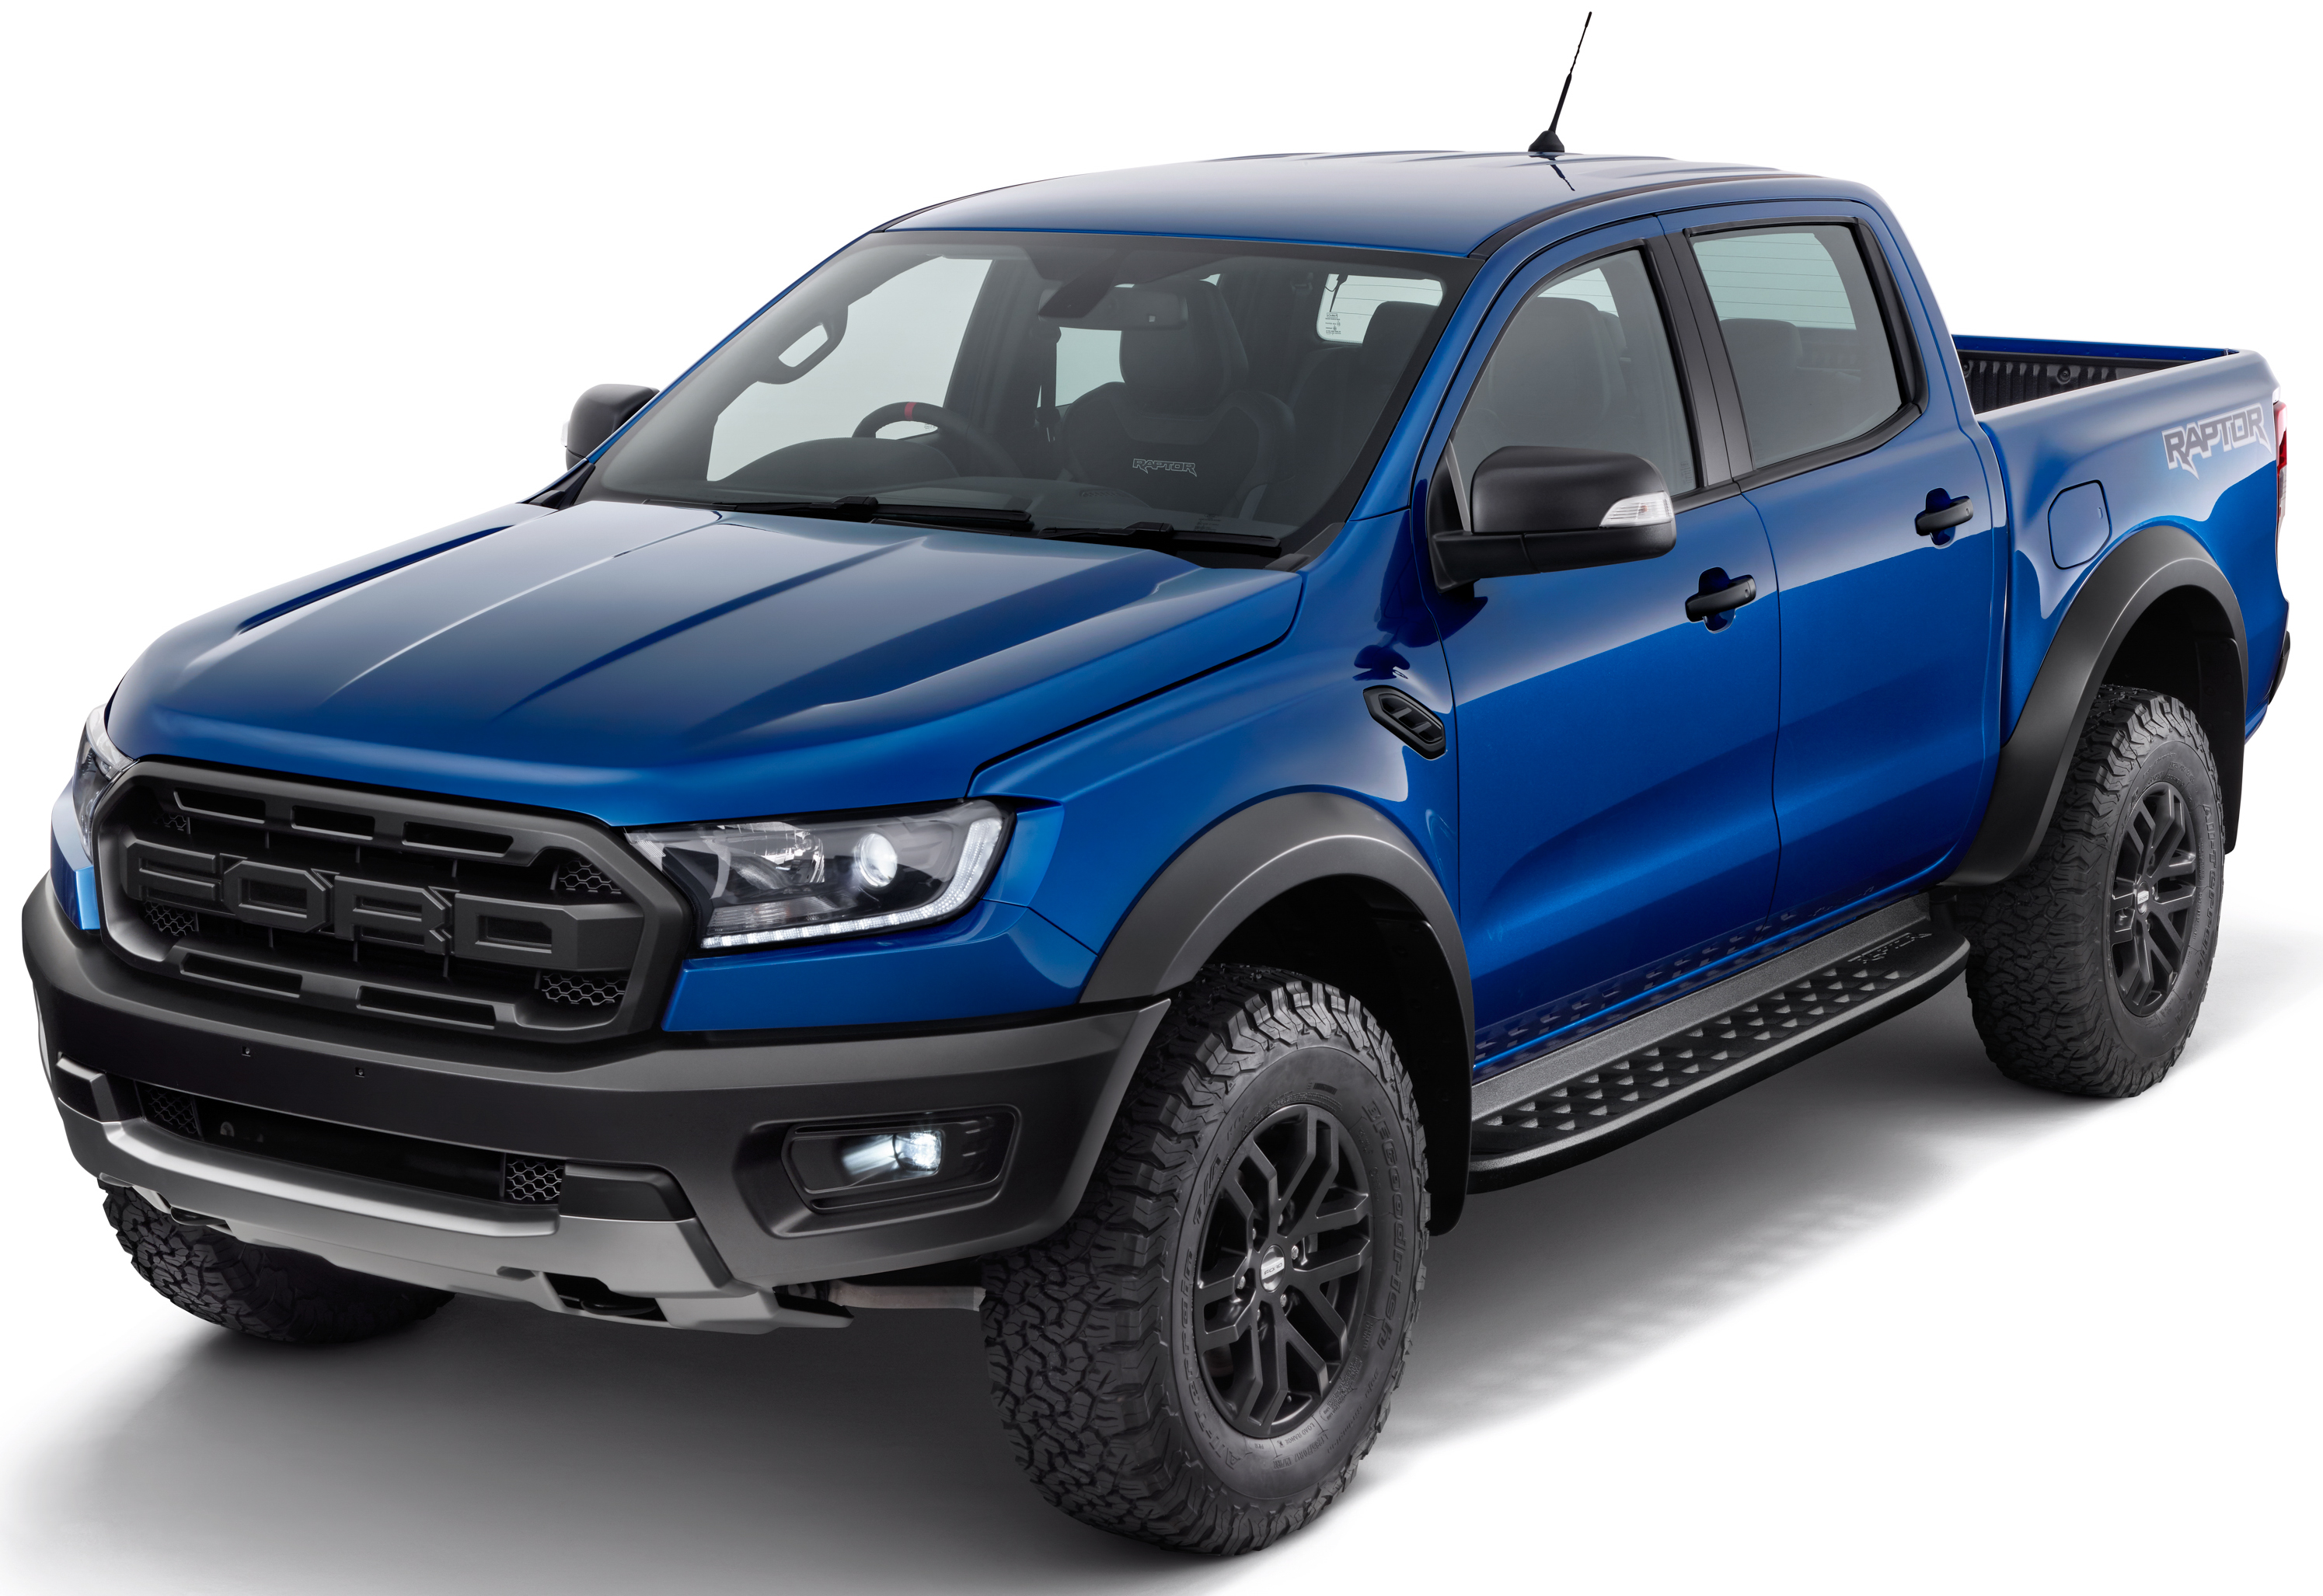 White Ford Raptor >> Ford Ranger Raptor debuts in Thailand – new 2.0L biturbo diesel, 213 PS, 500 Nm; 10-speed ...